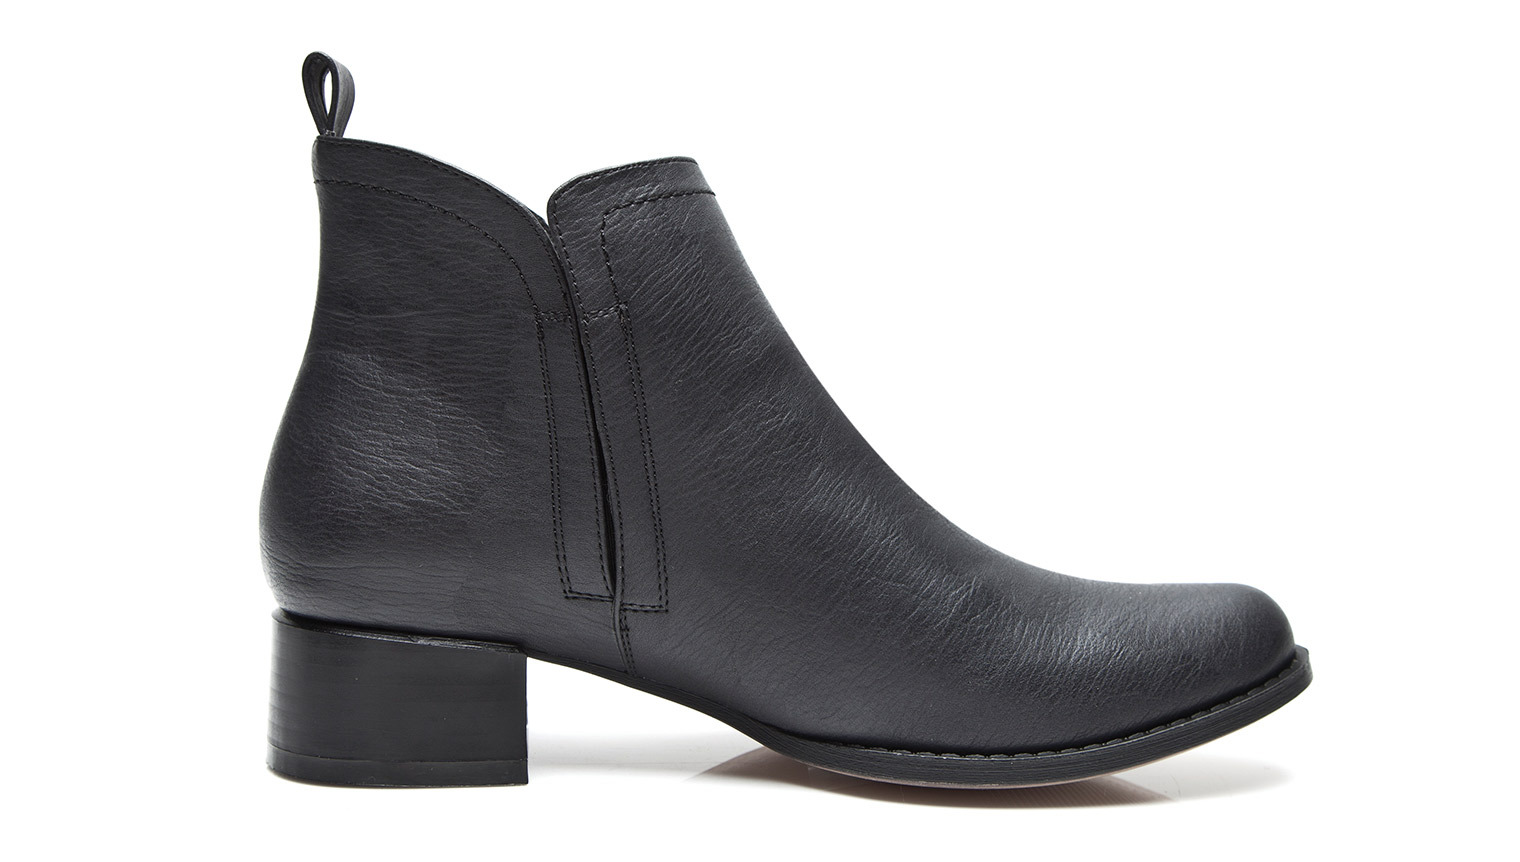 KUSTOM SHOES SELINA BOOT / BLACK